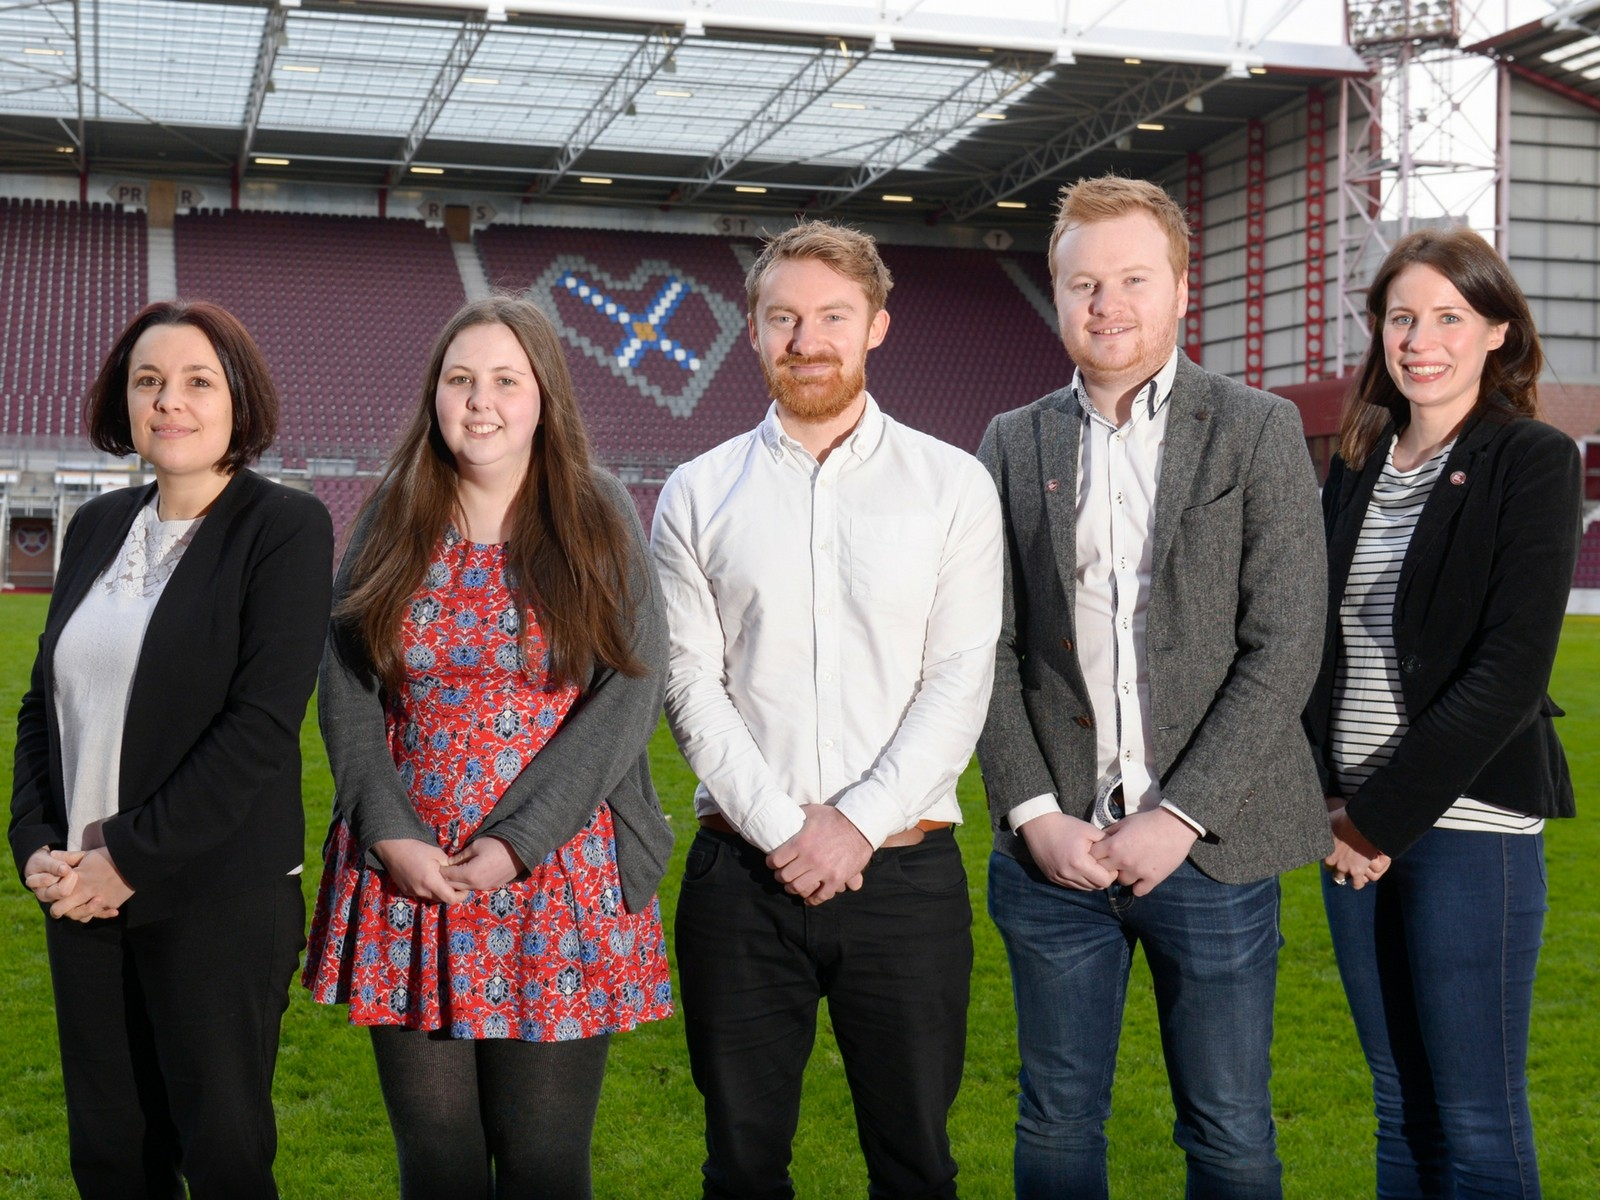 » Big Hearts strengthens its staff team ahead of new three-year plan